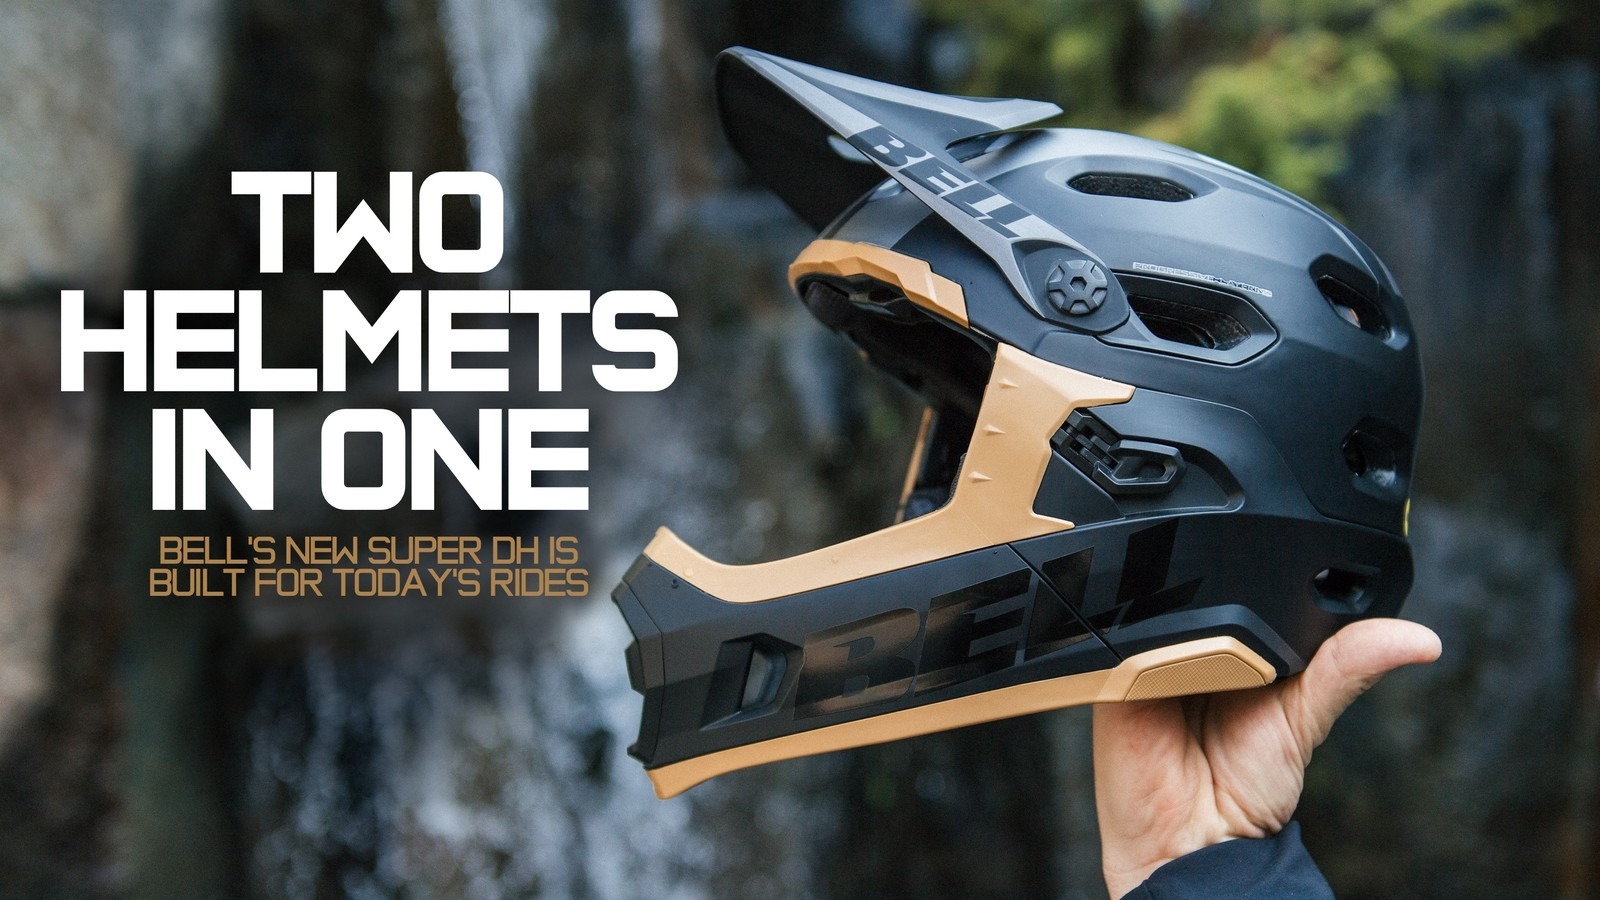 Two Helmets in One - Bell's New Super DH is Built for Today's Rides